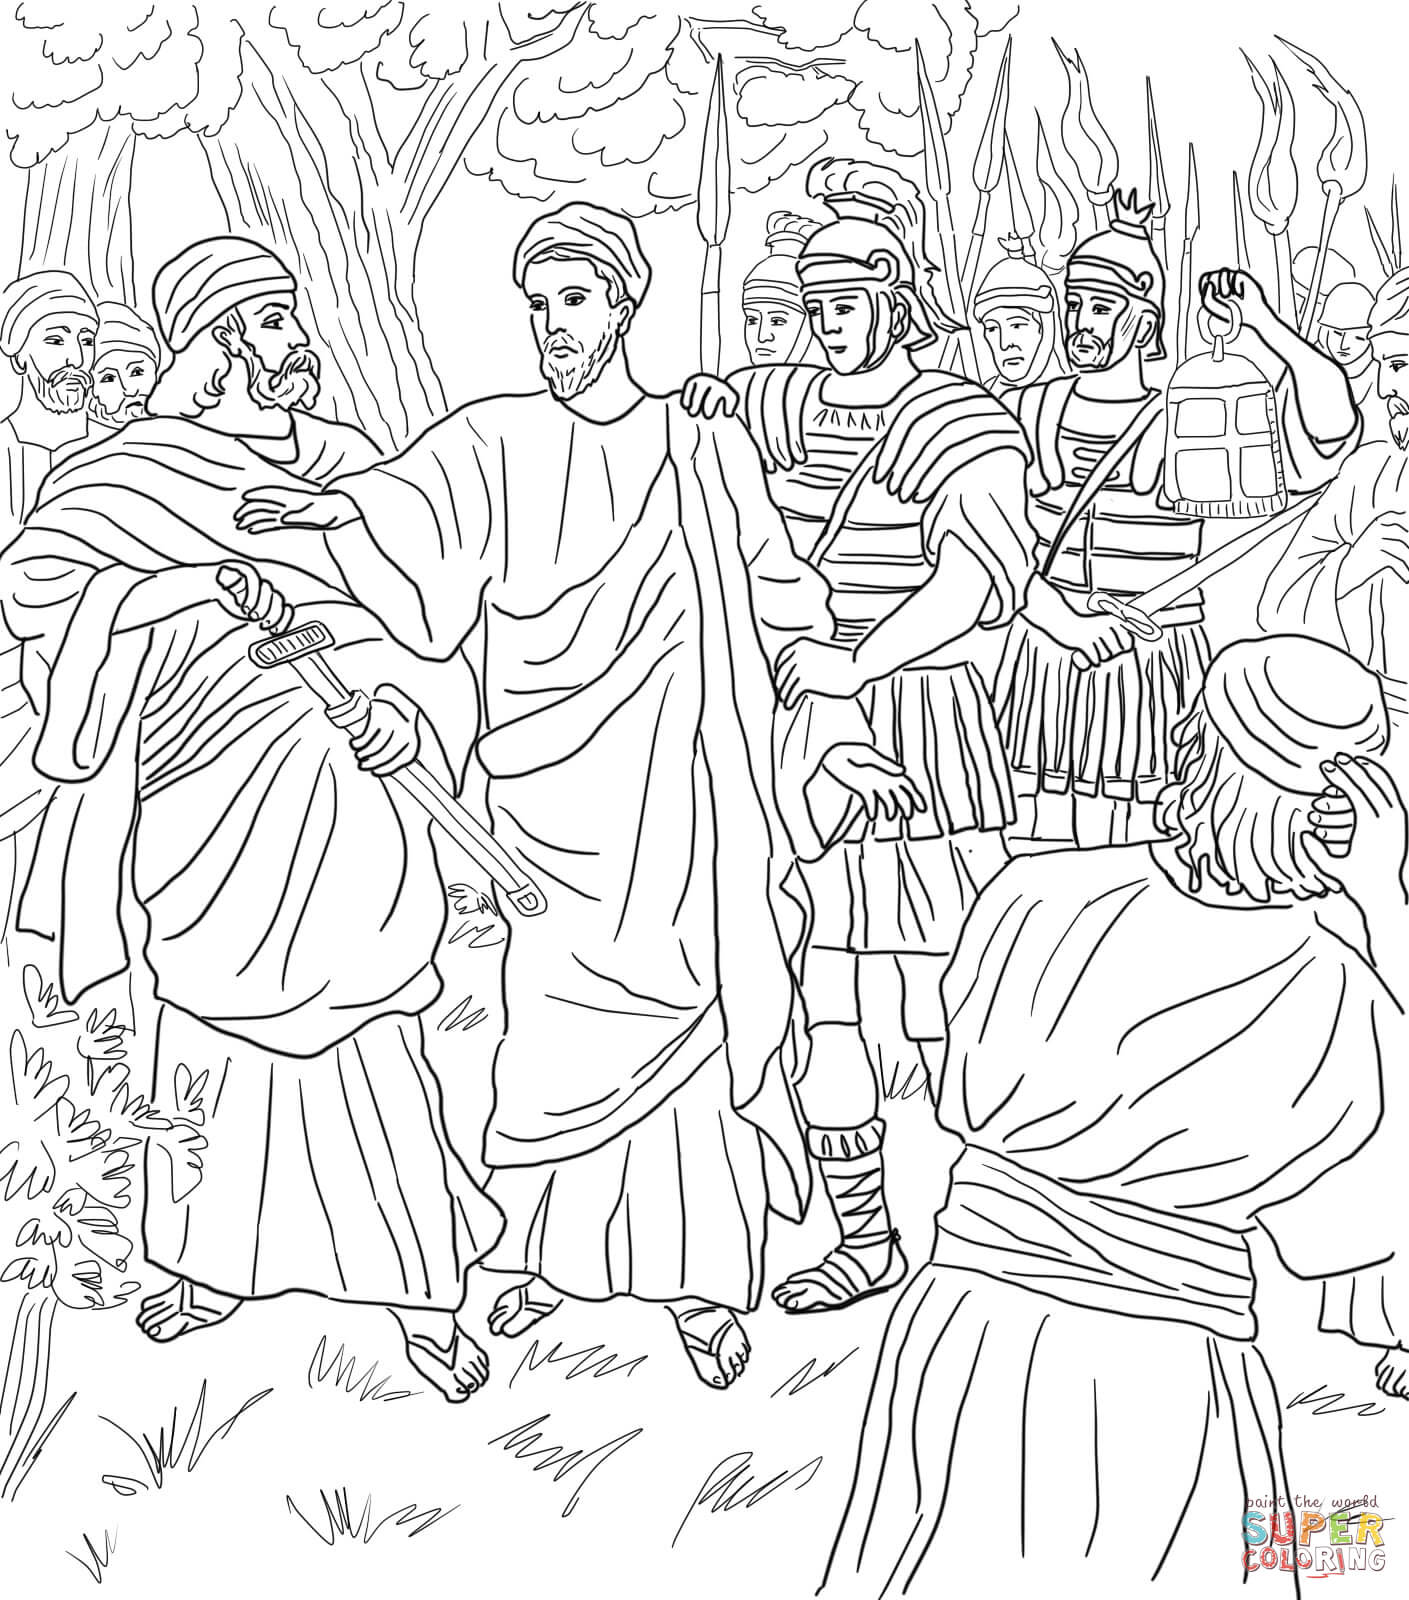 Jesus Arrested in the Garden of Gethsemane coloring page.